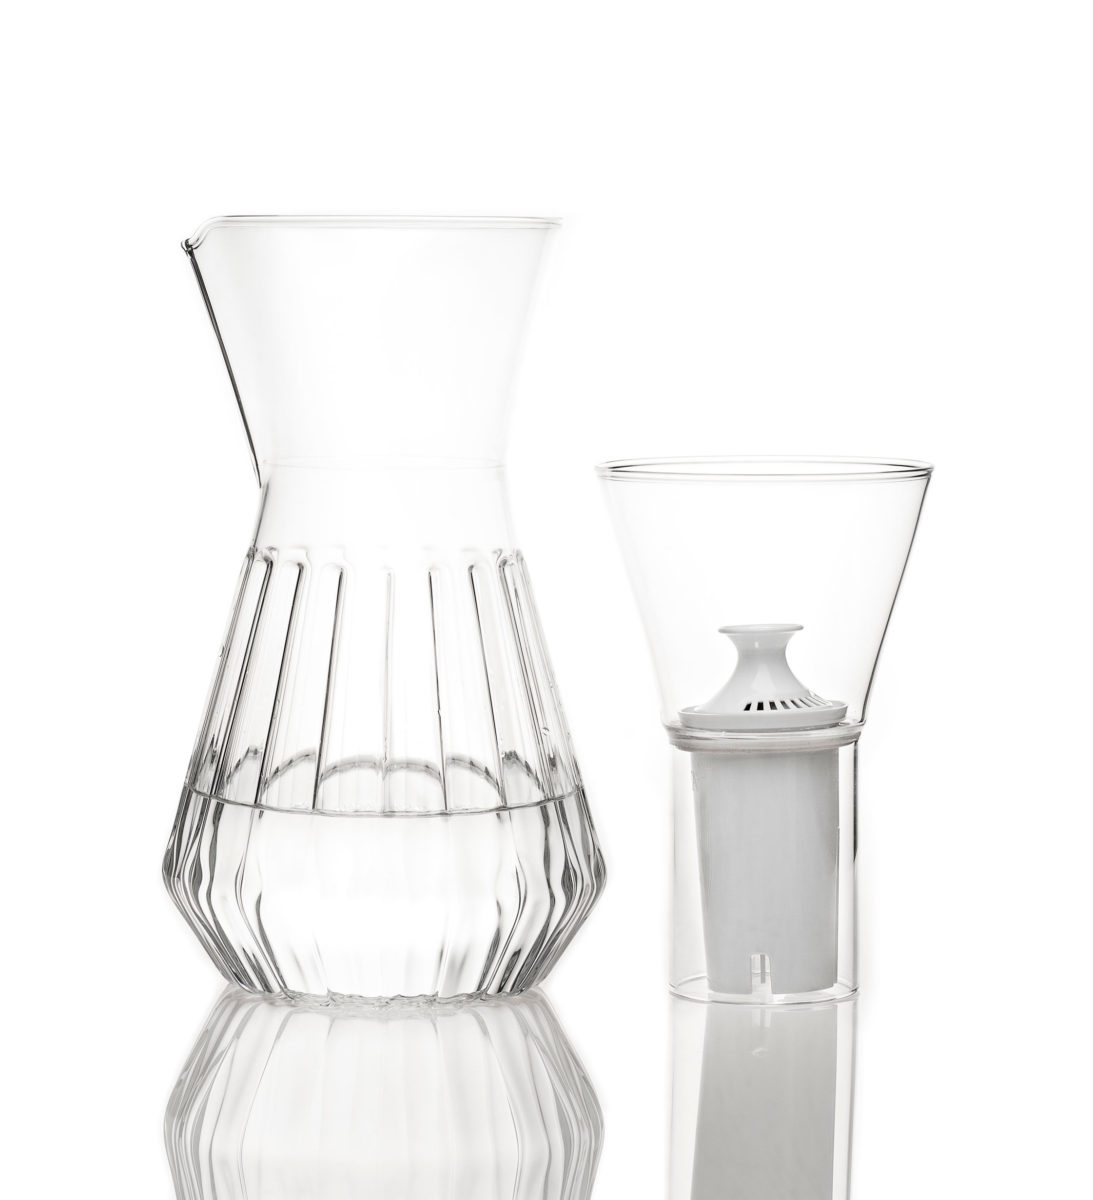 Fluted Talise Carafe, Photo: Lara Kastner